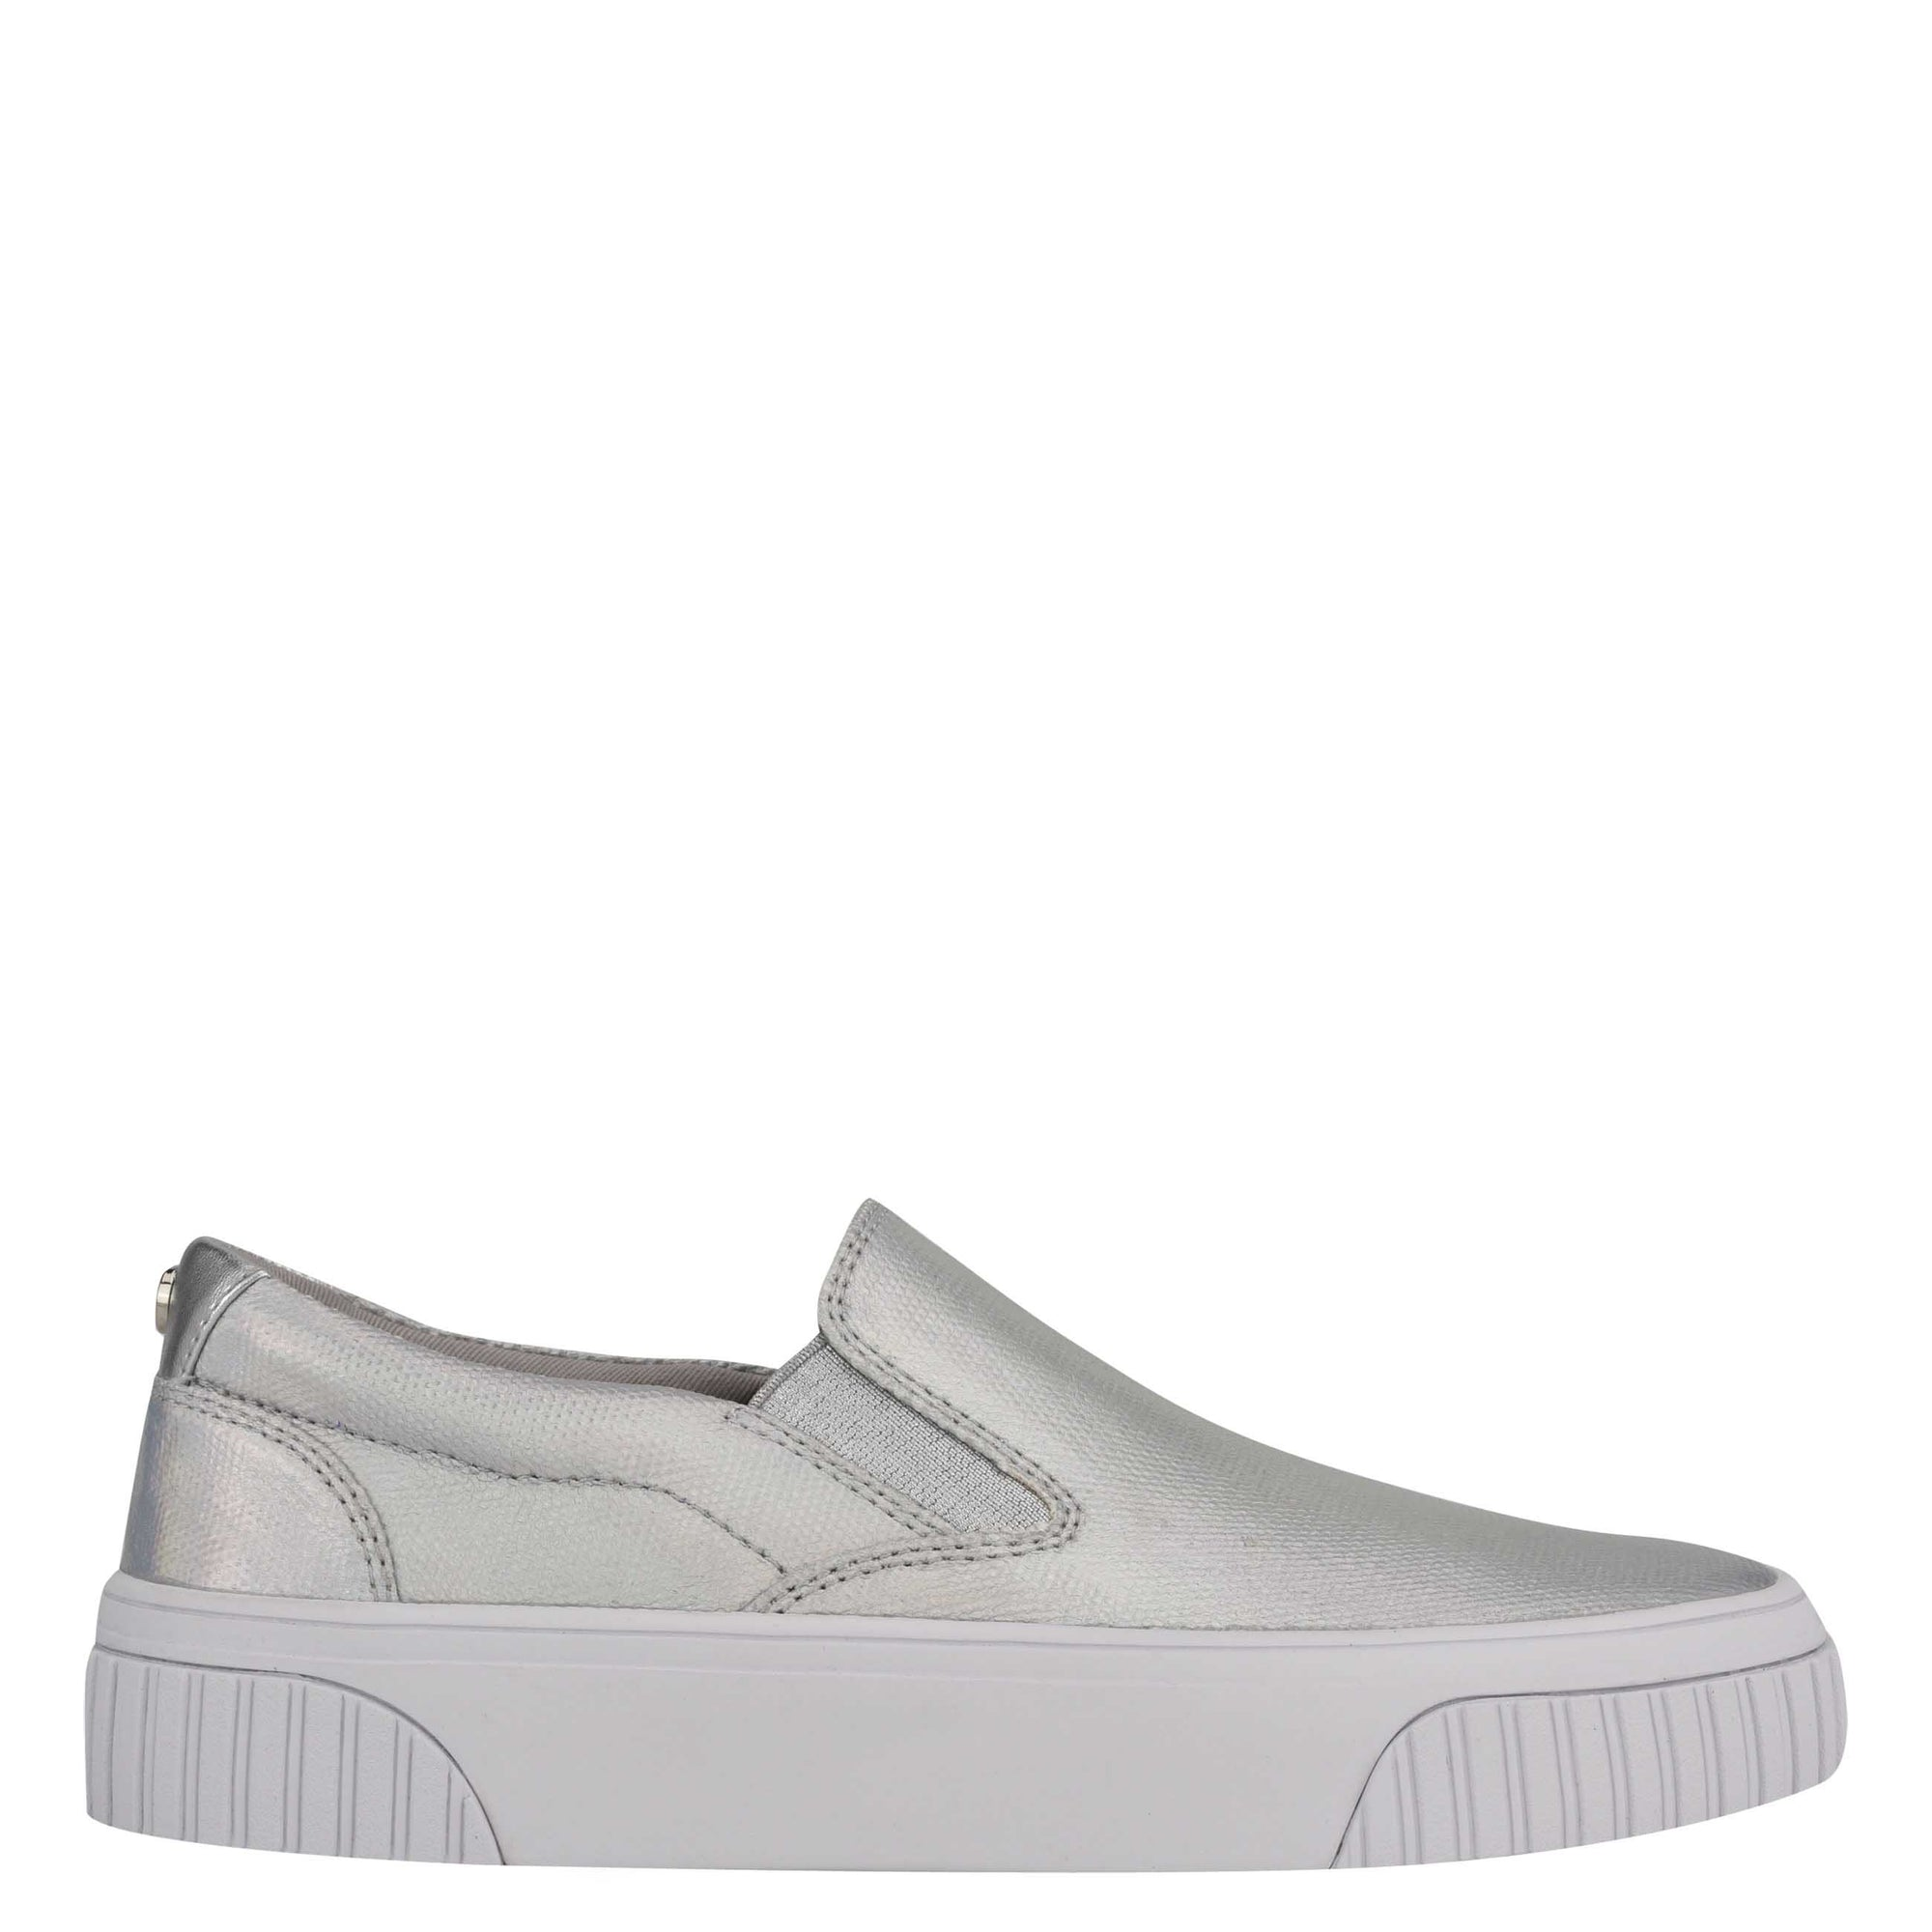 Dally Slip On Sneakers